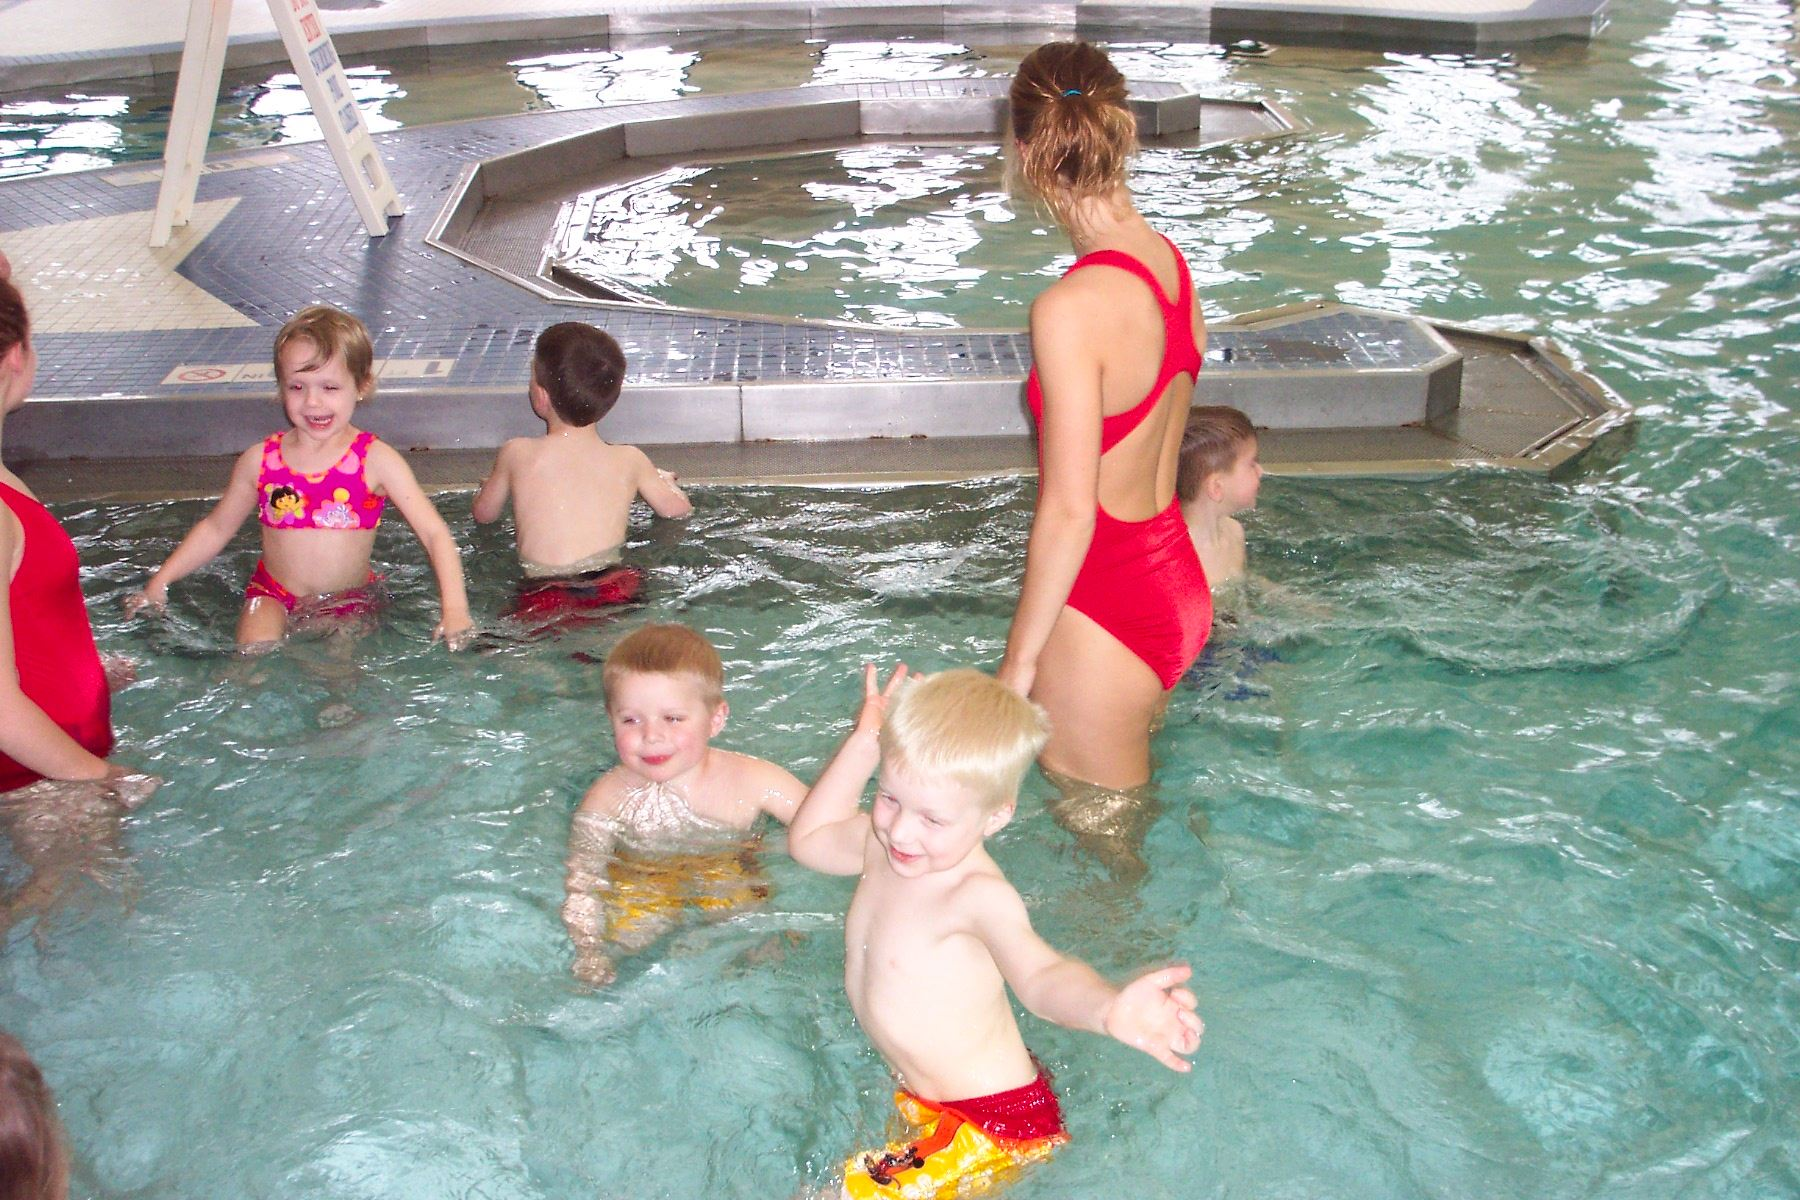 A group of supervised children enjoying themselves in the indoor pool.